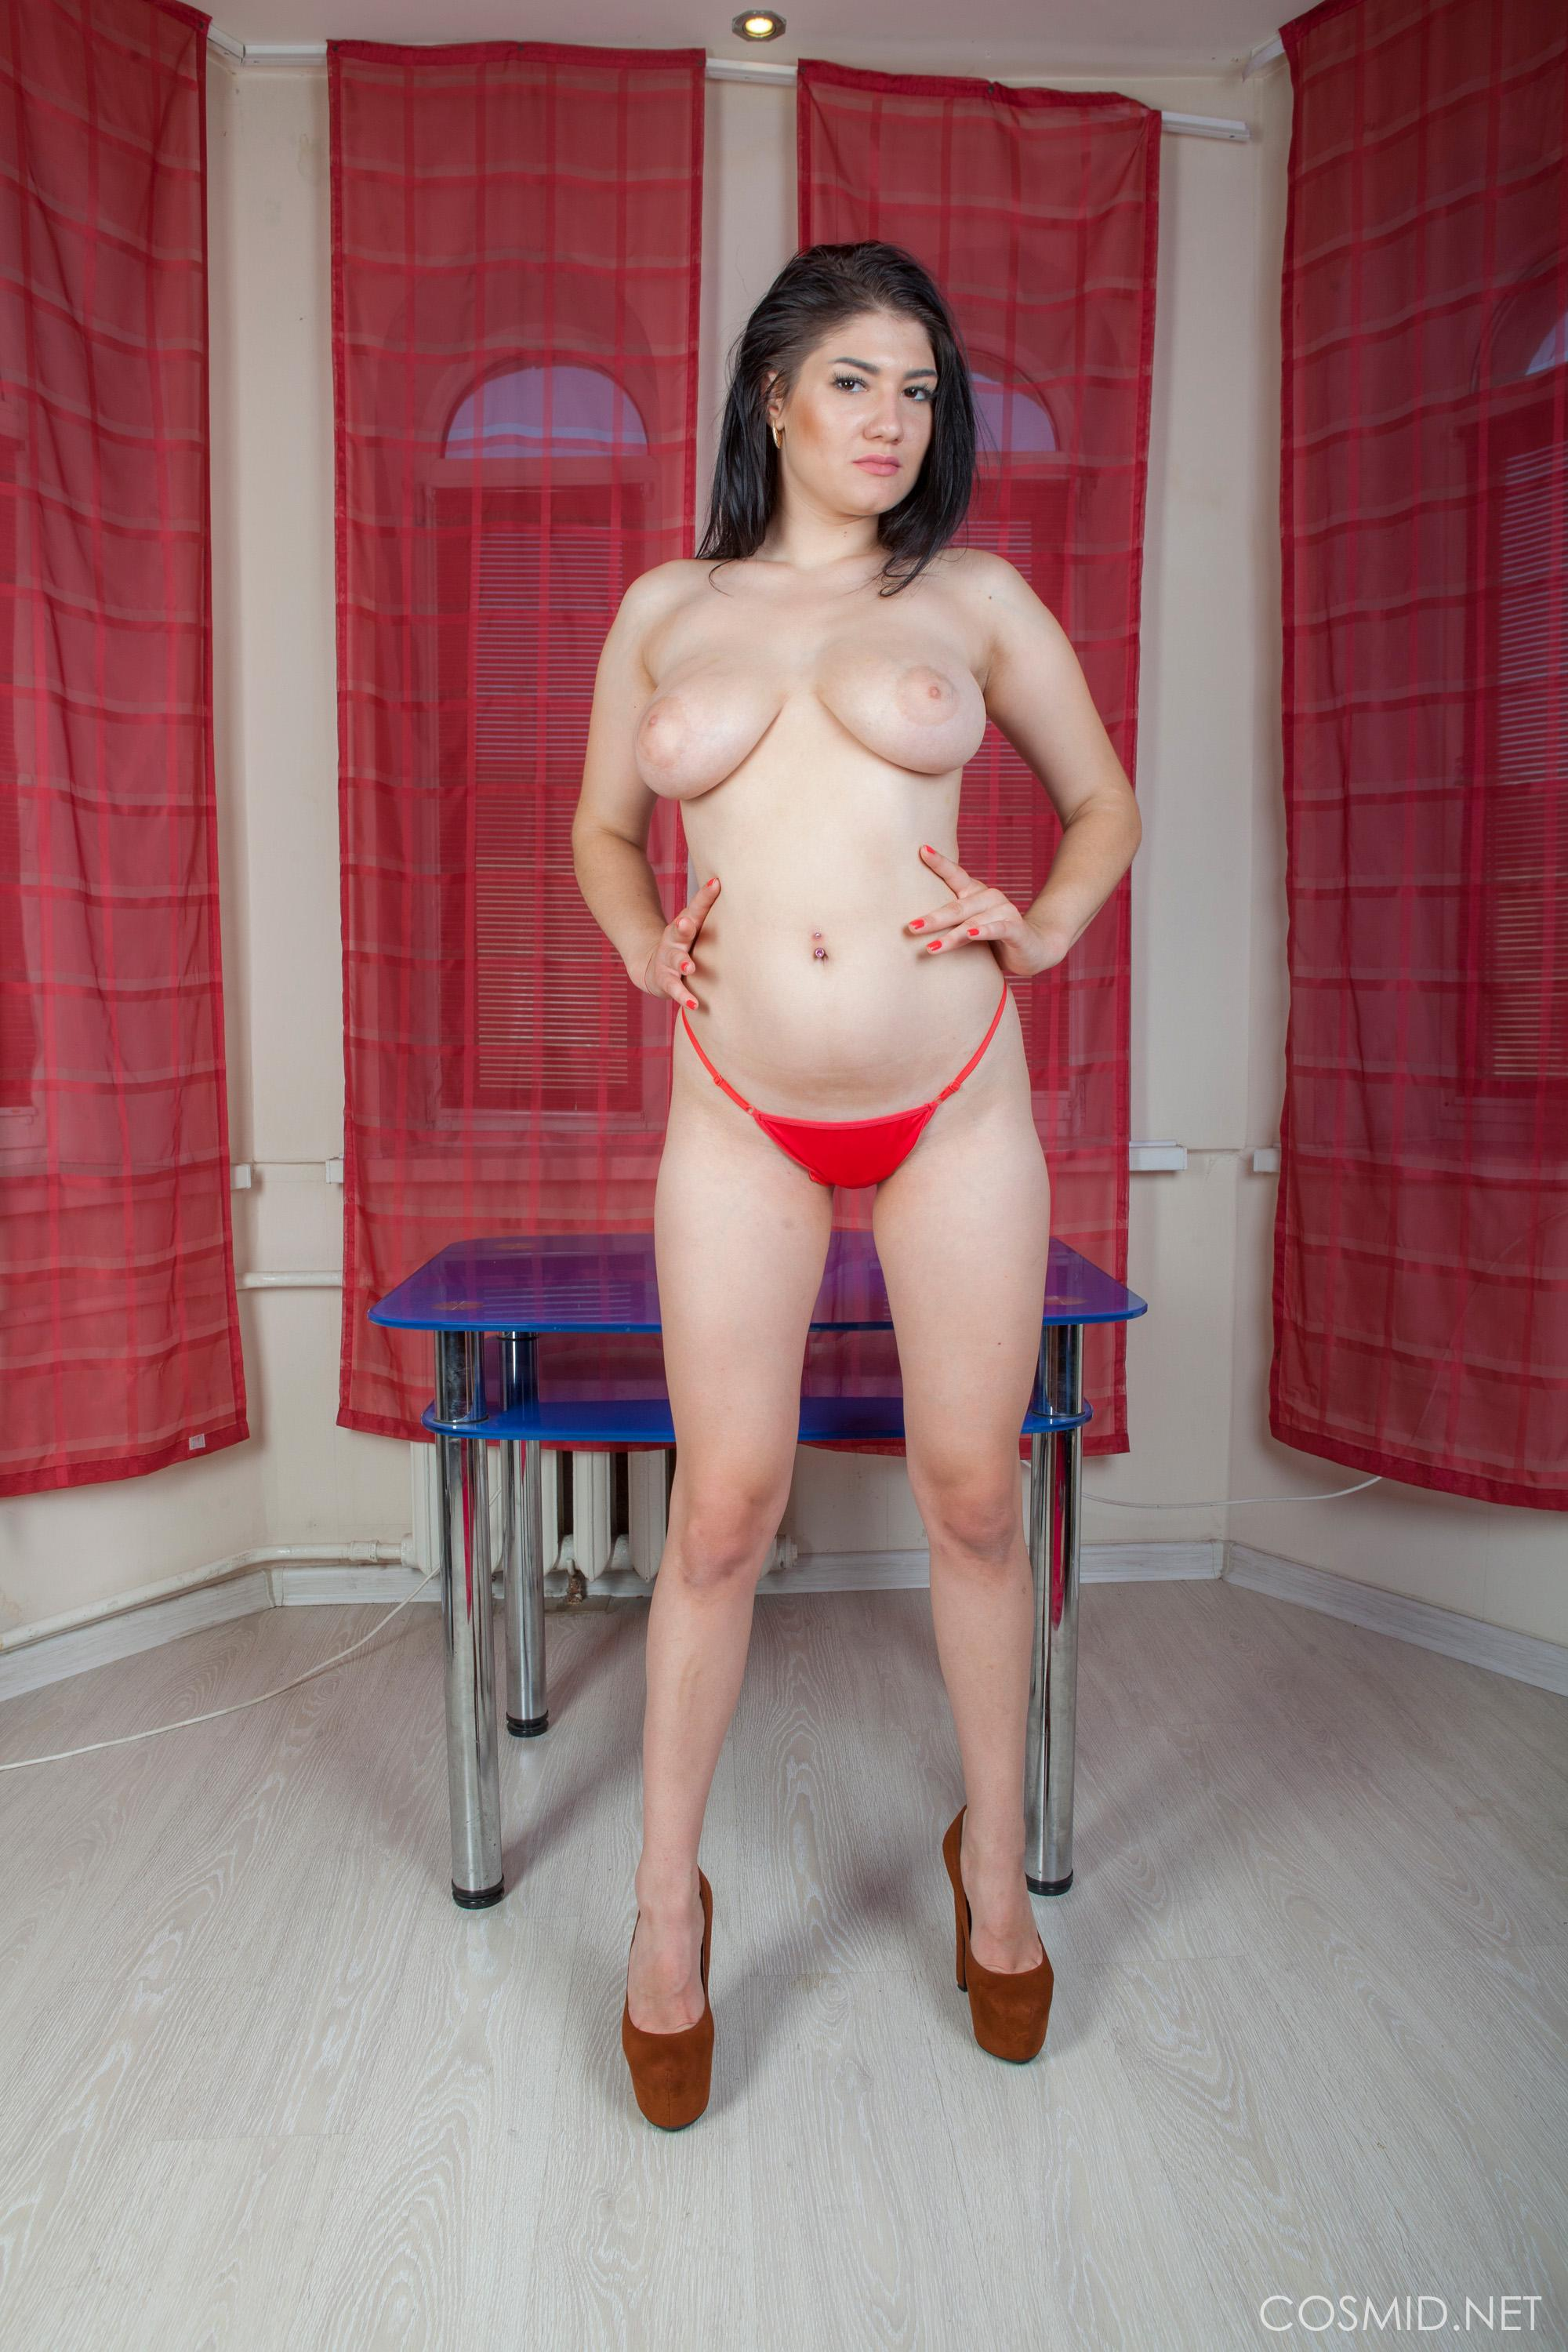 masterpiece of female labia exposed by cosmid model angela #1